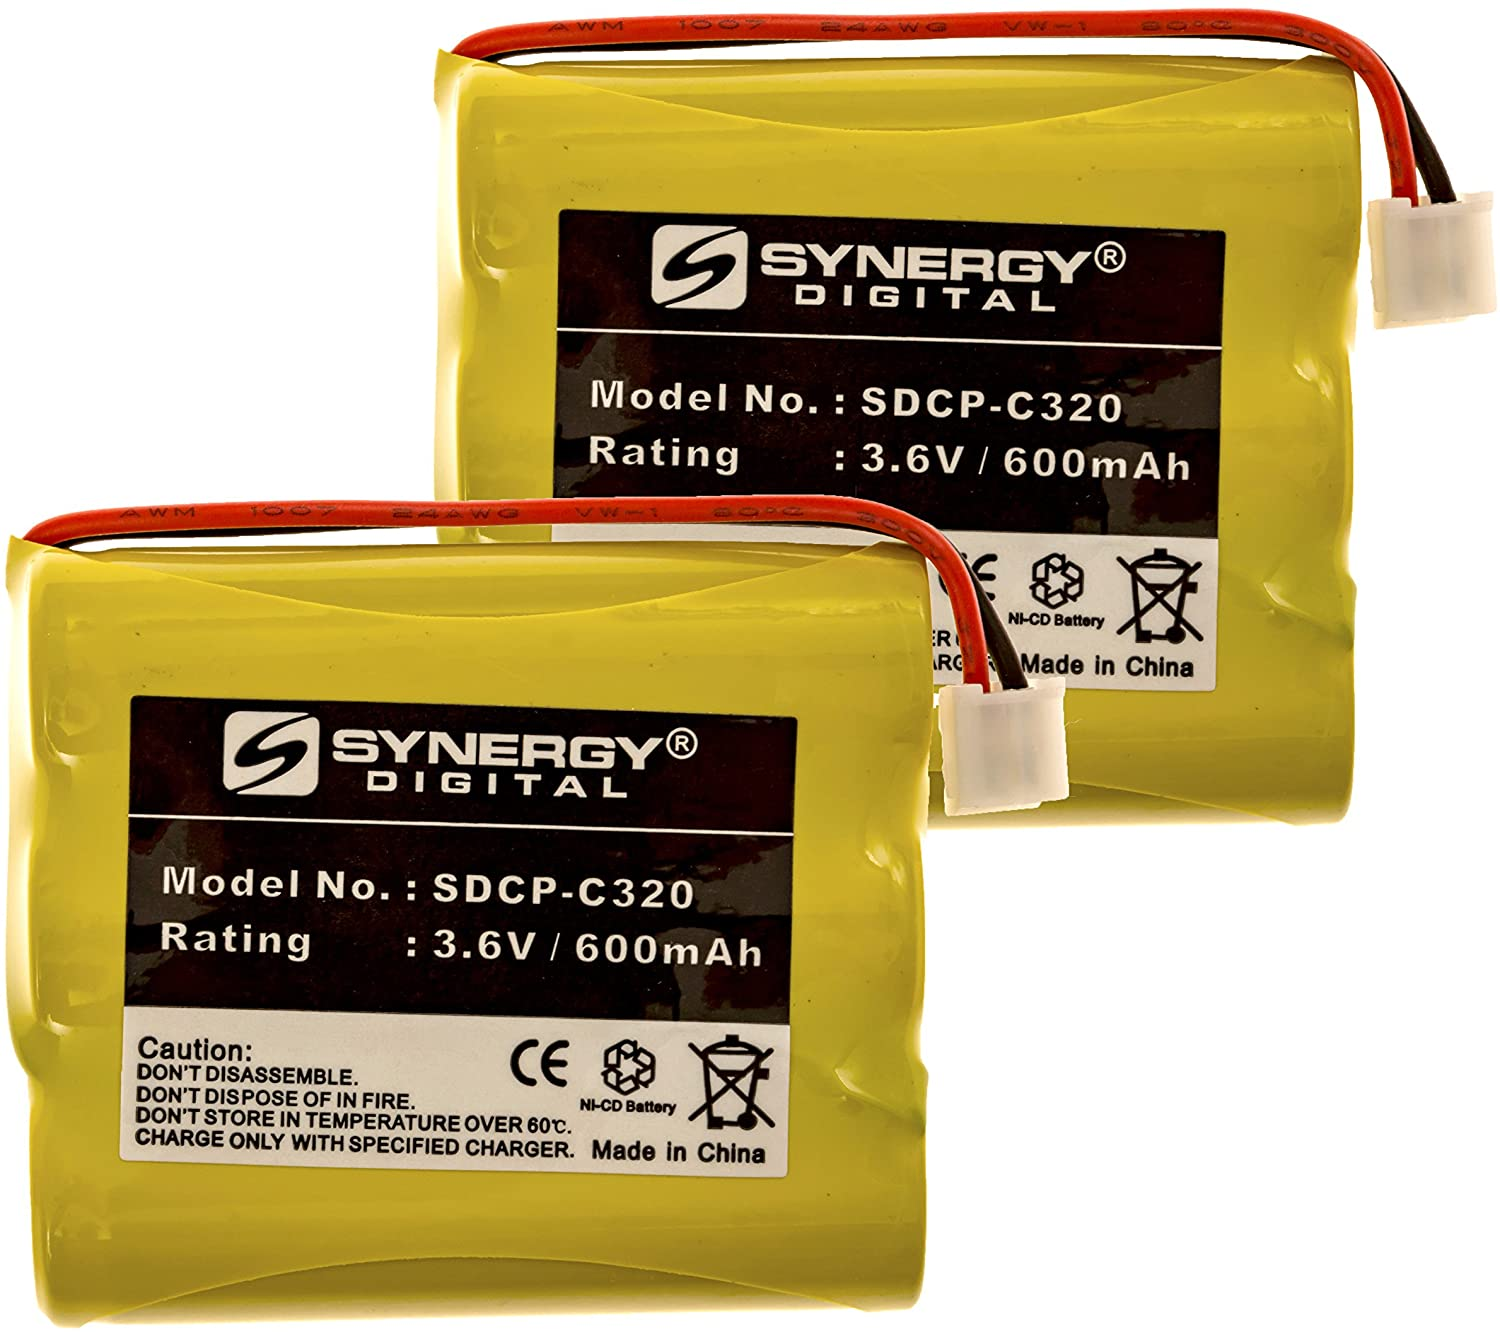 AT&T E5908 Cordless Phone Battery Combo-Pack Includes: 2 x SDCP-C320 Batteries